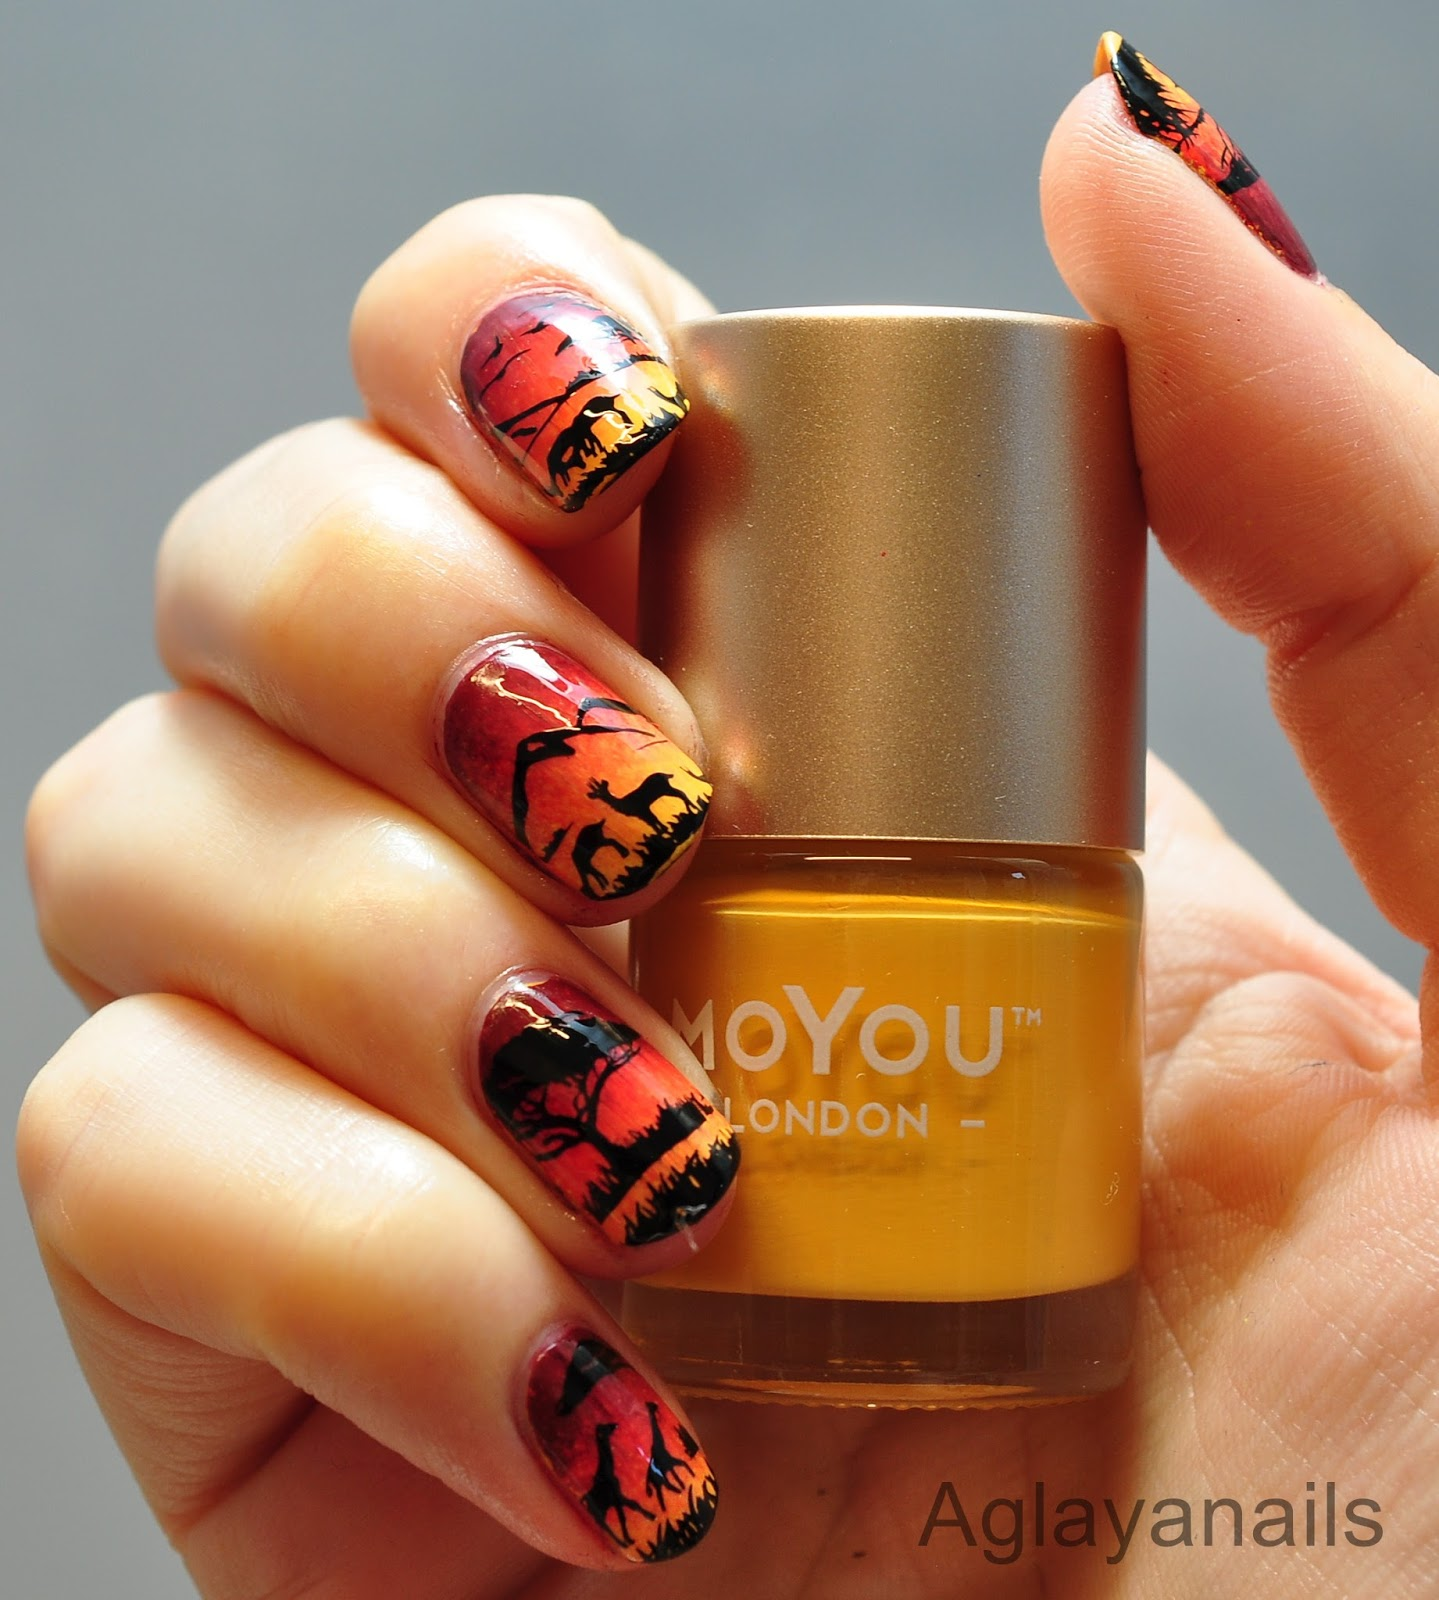 26 Great Nail Art Ideas Beach Or Animal Silhouettes By Aglayanails